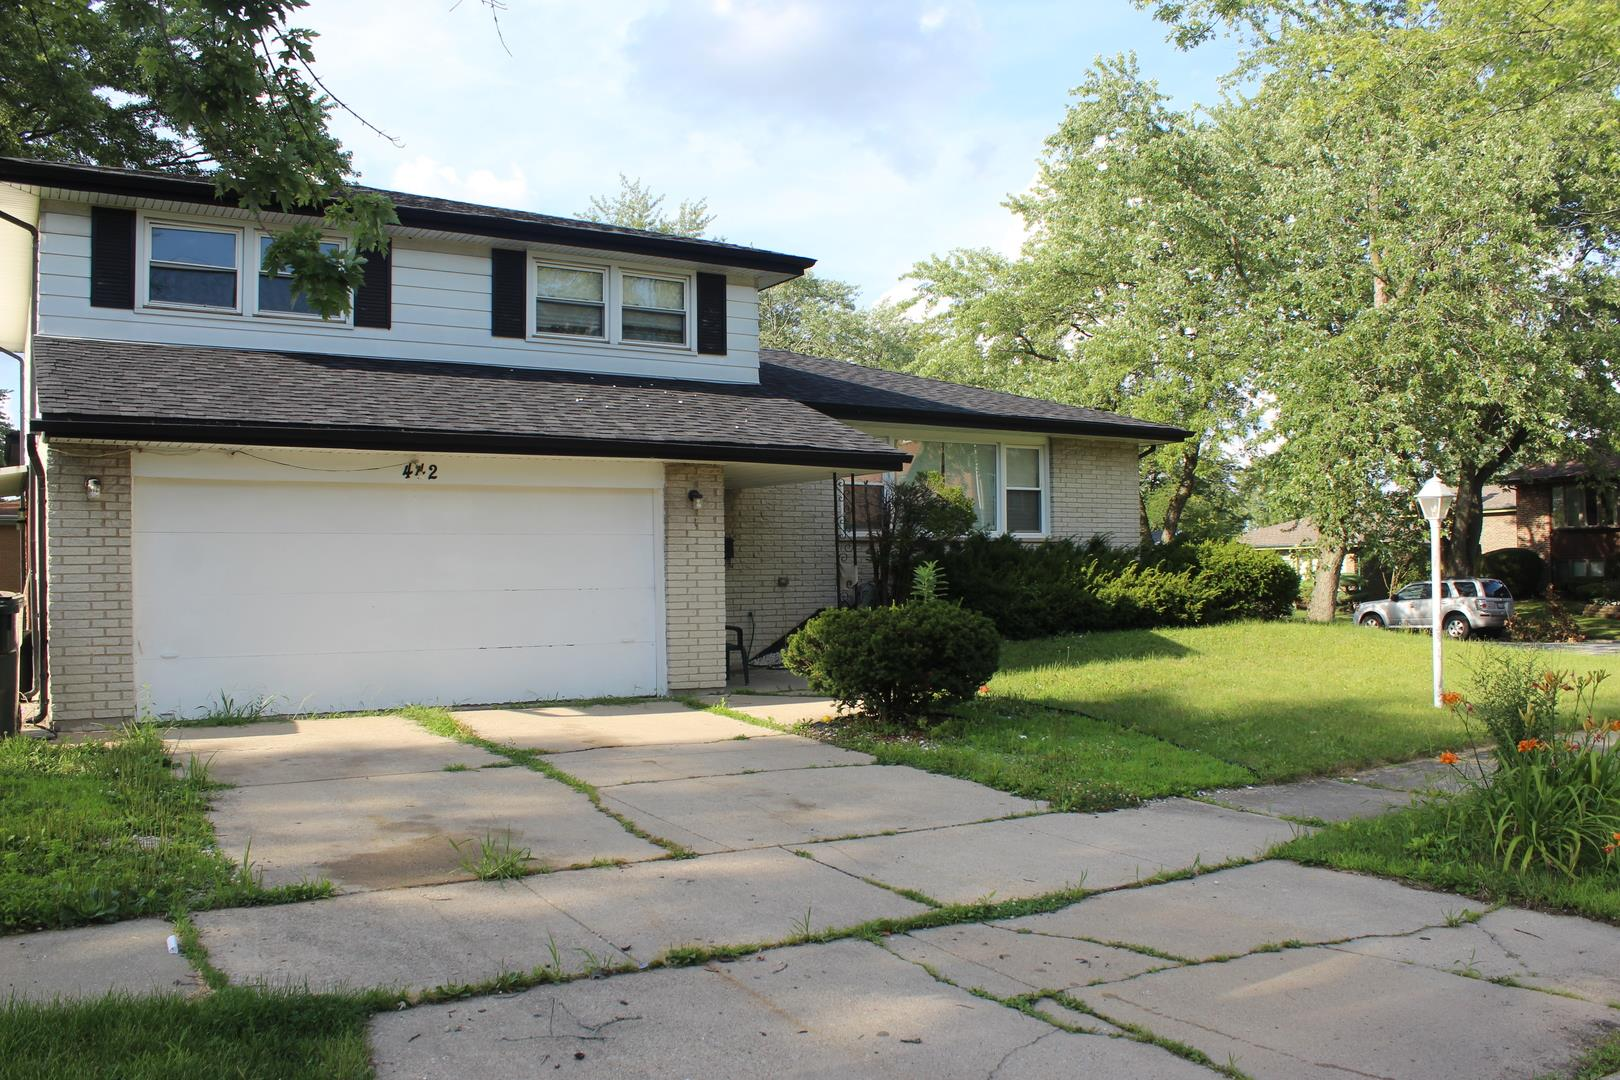 442 E 192nd Street, Glenwood, IL 60425 - #: 10793498